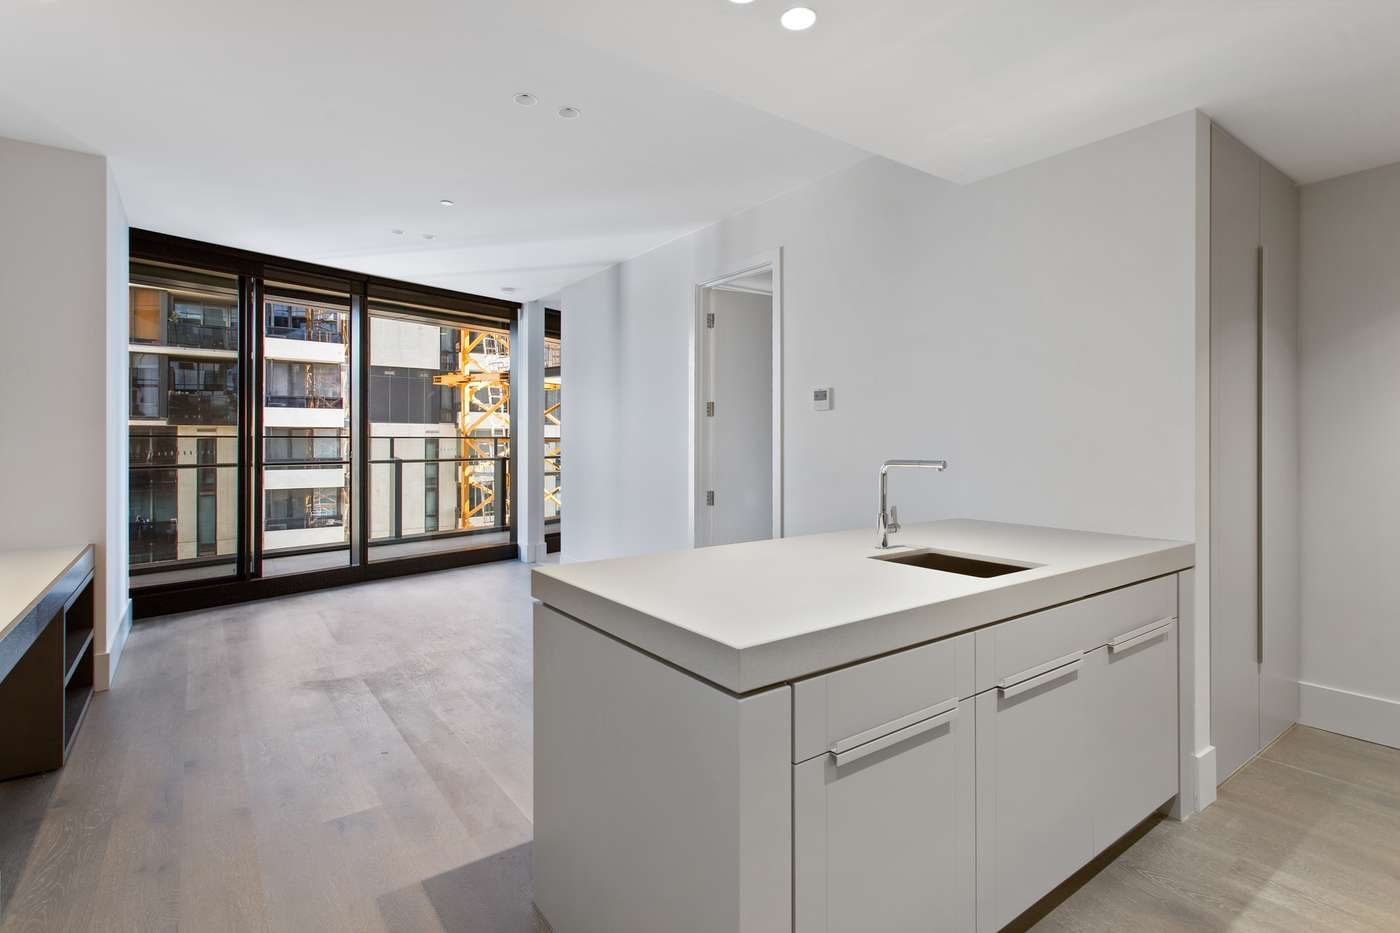 Main view of Homely apartment listing, 810A/1 Almeida Crescent, South Yarra, VIC 3141